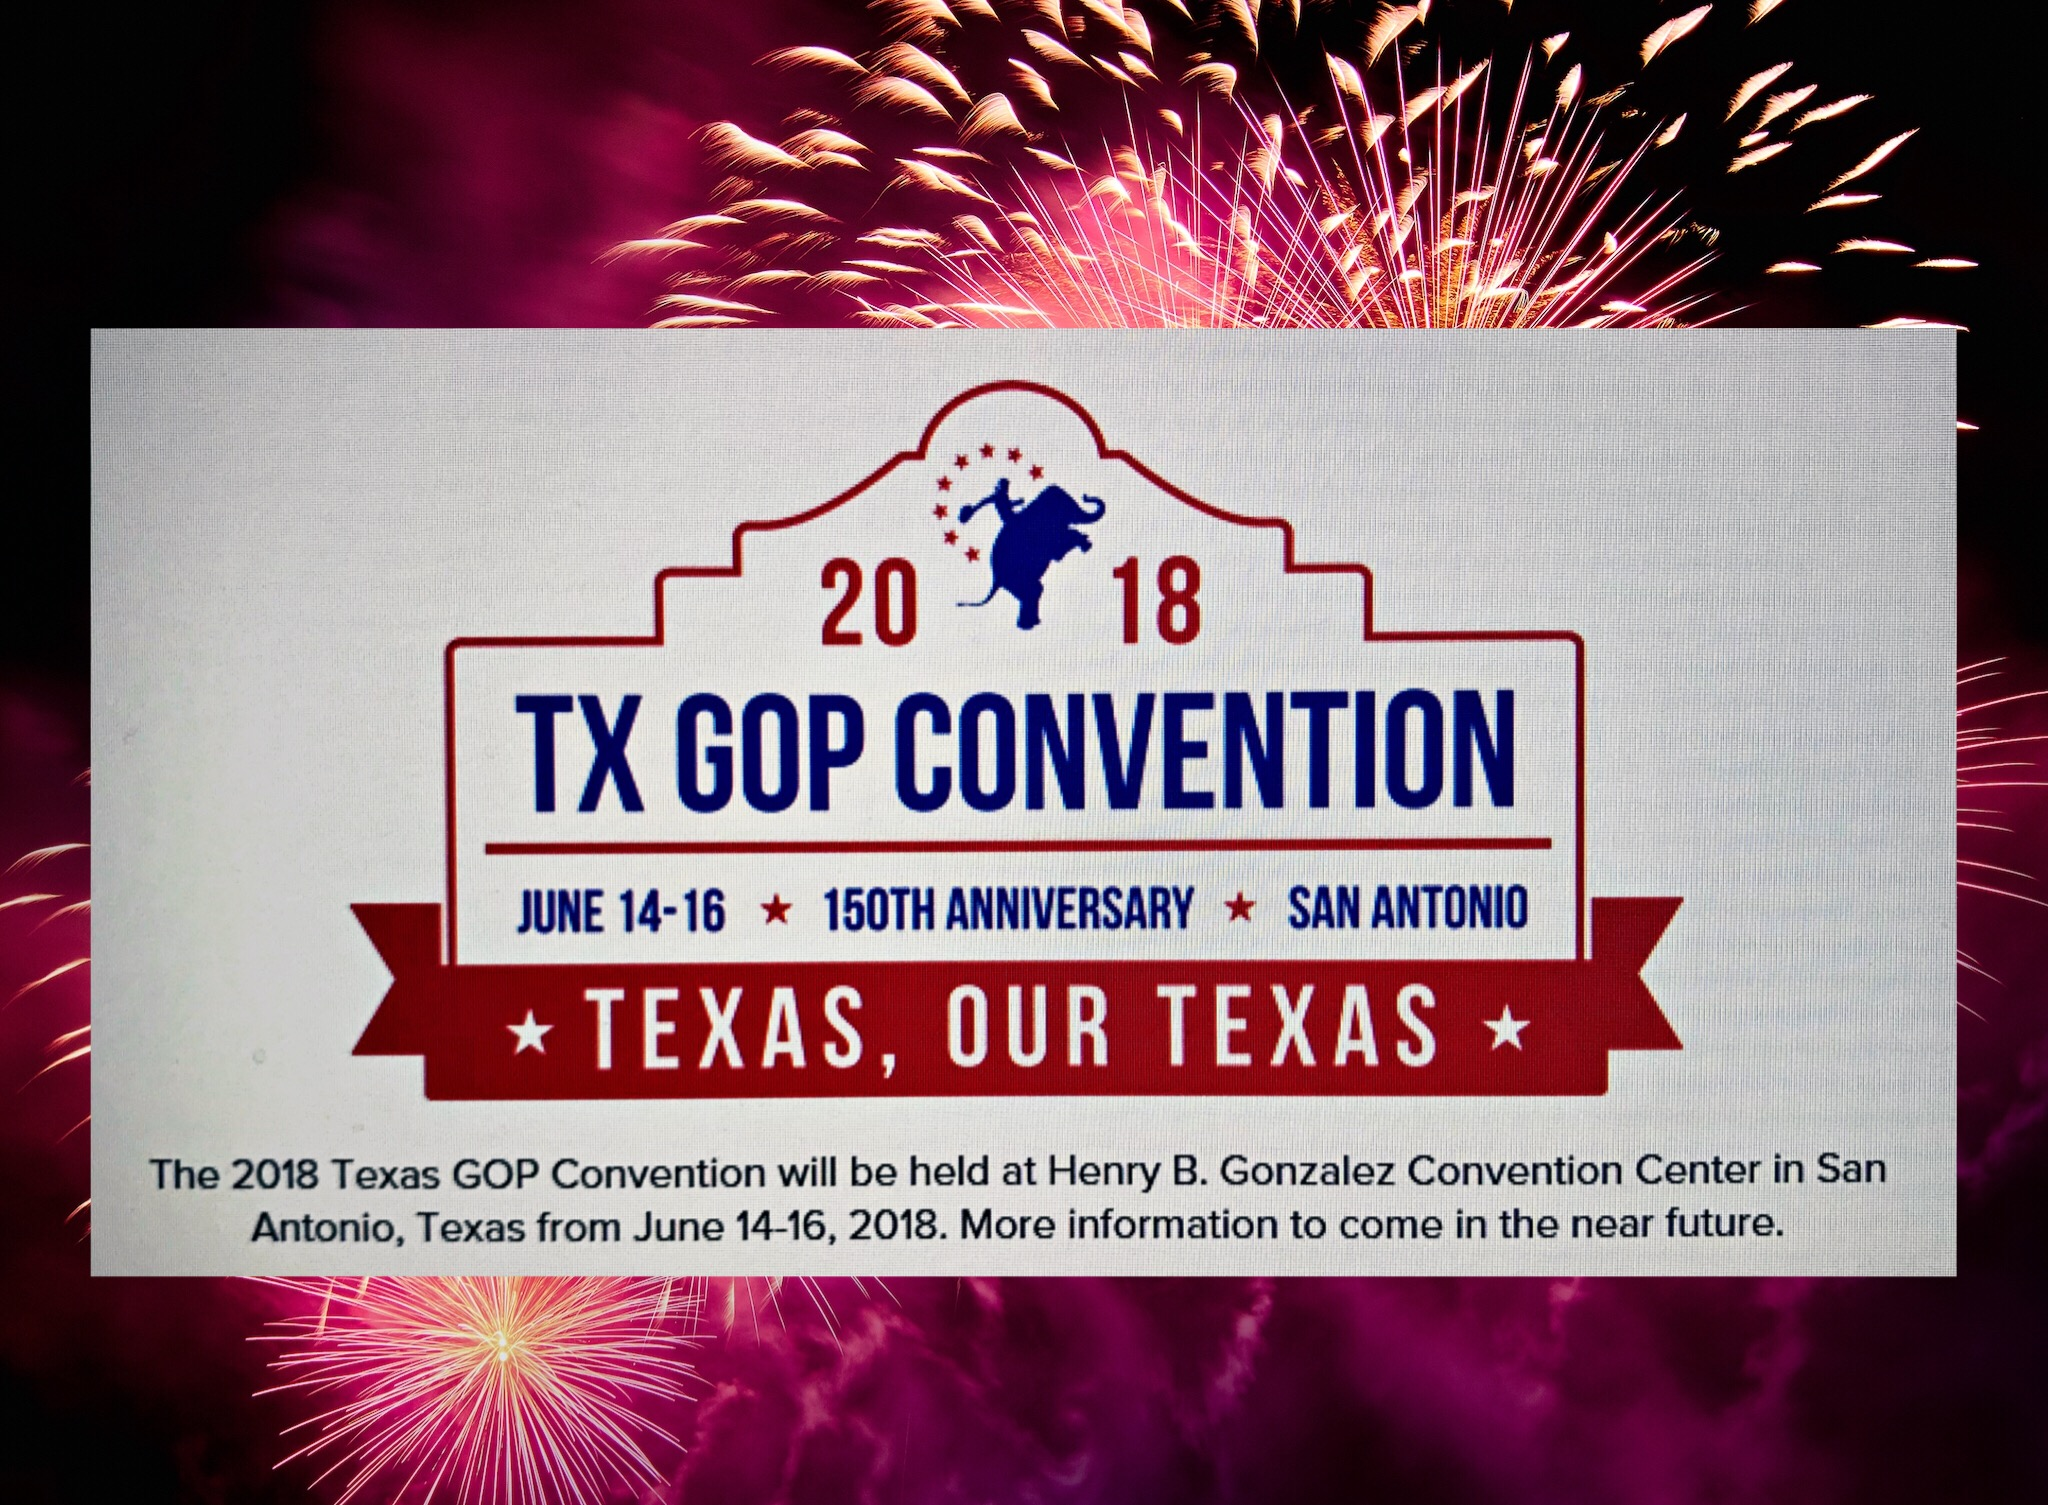 2018 Convention logo with fireworks